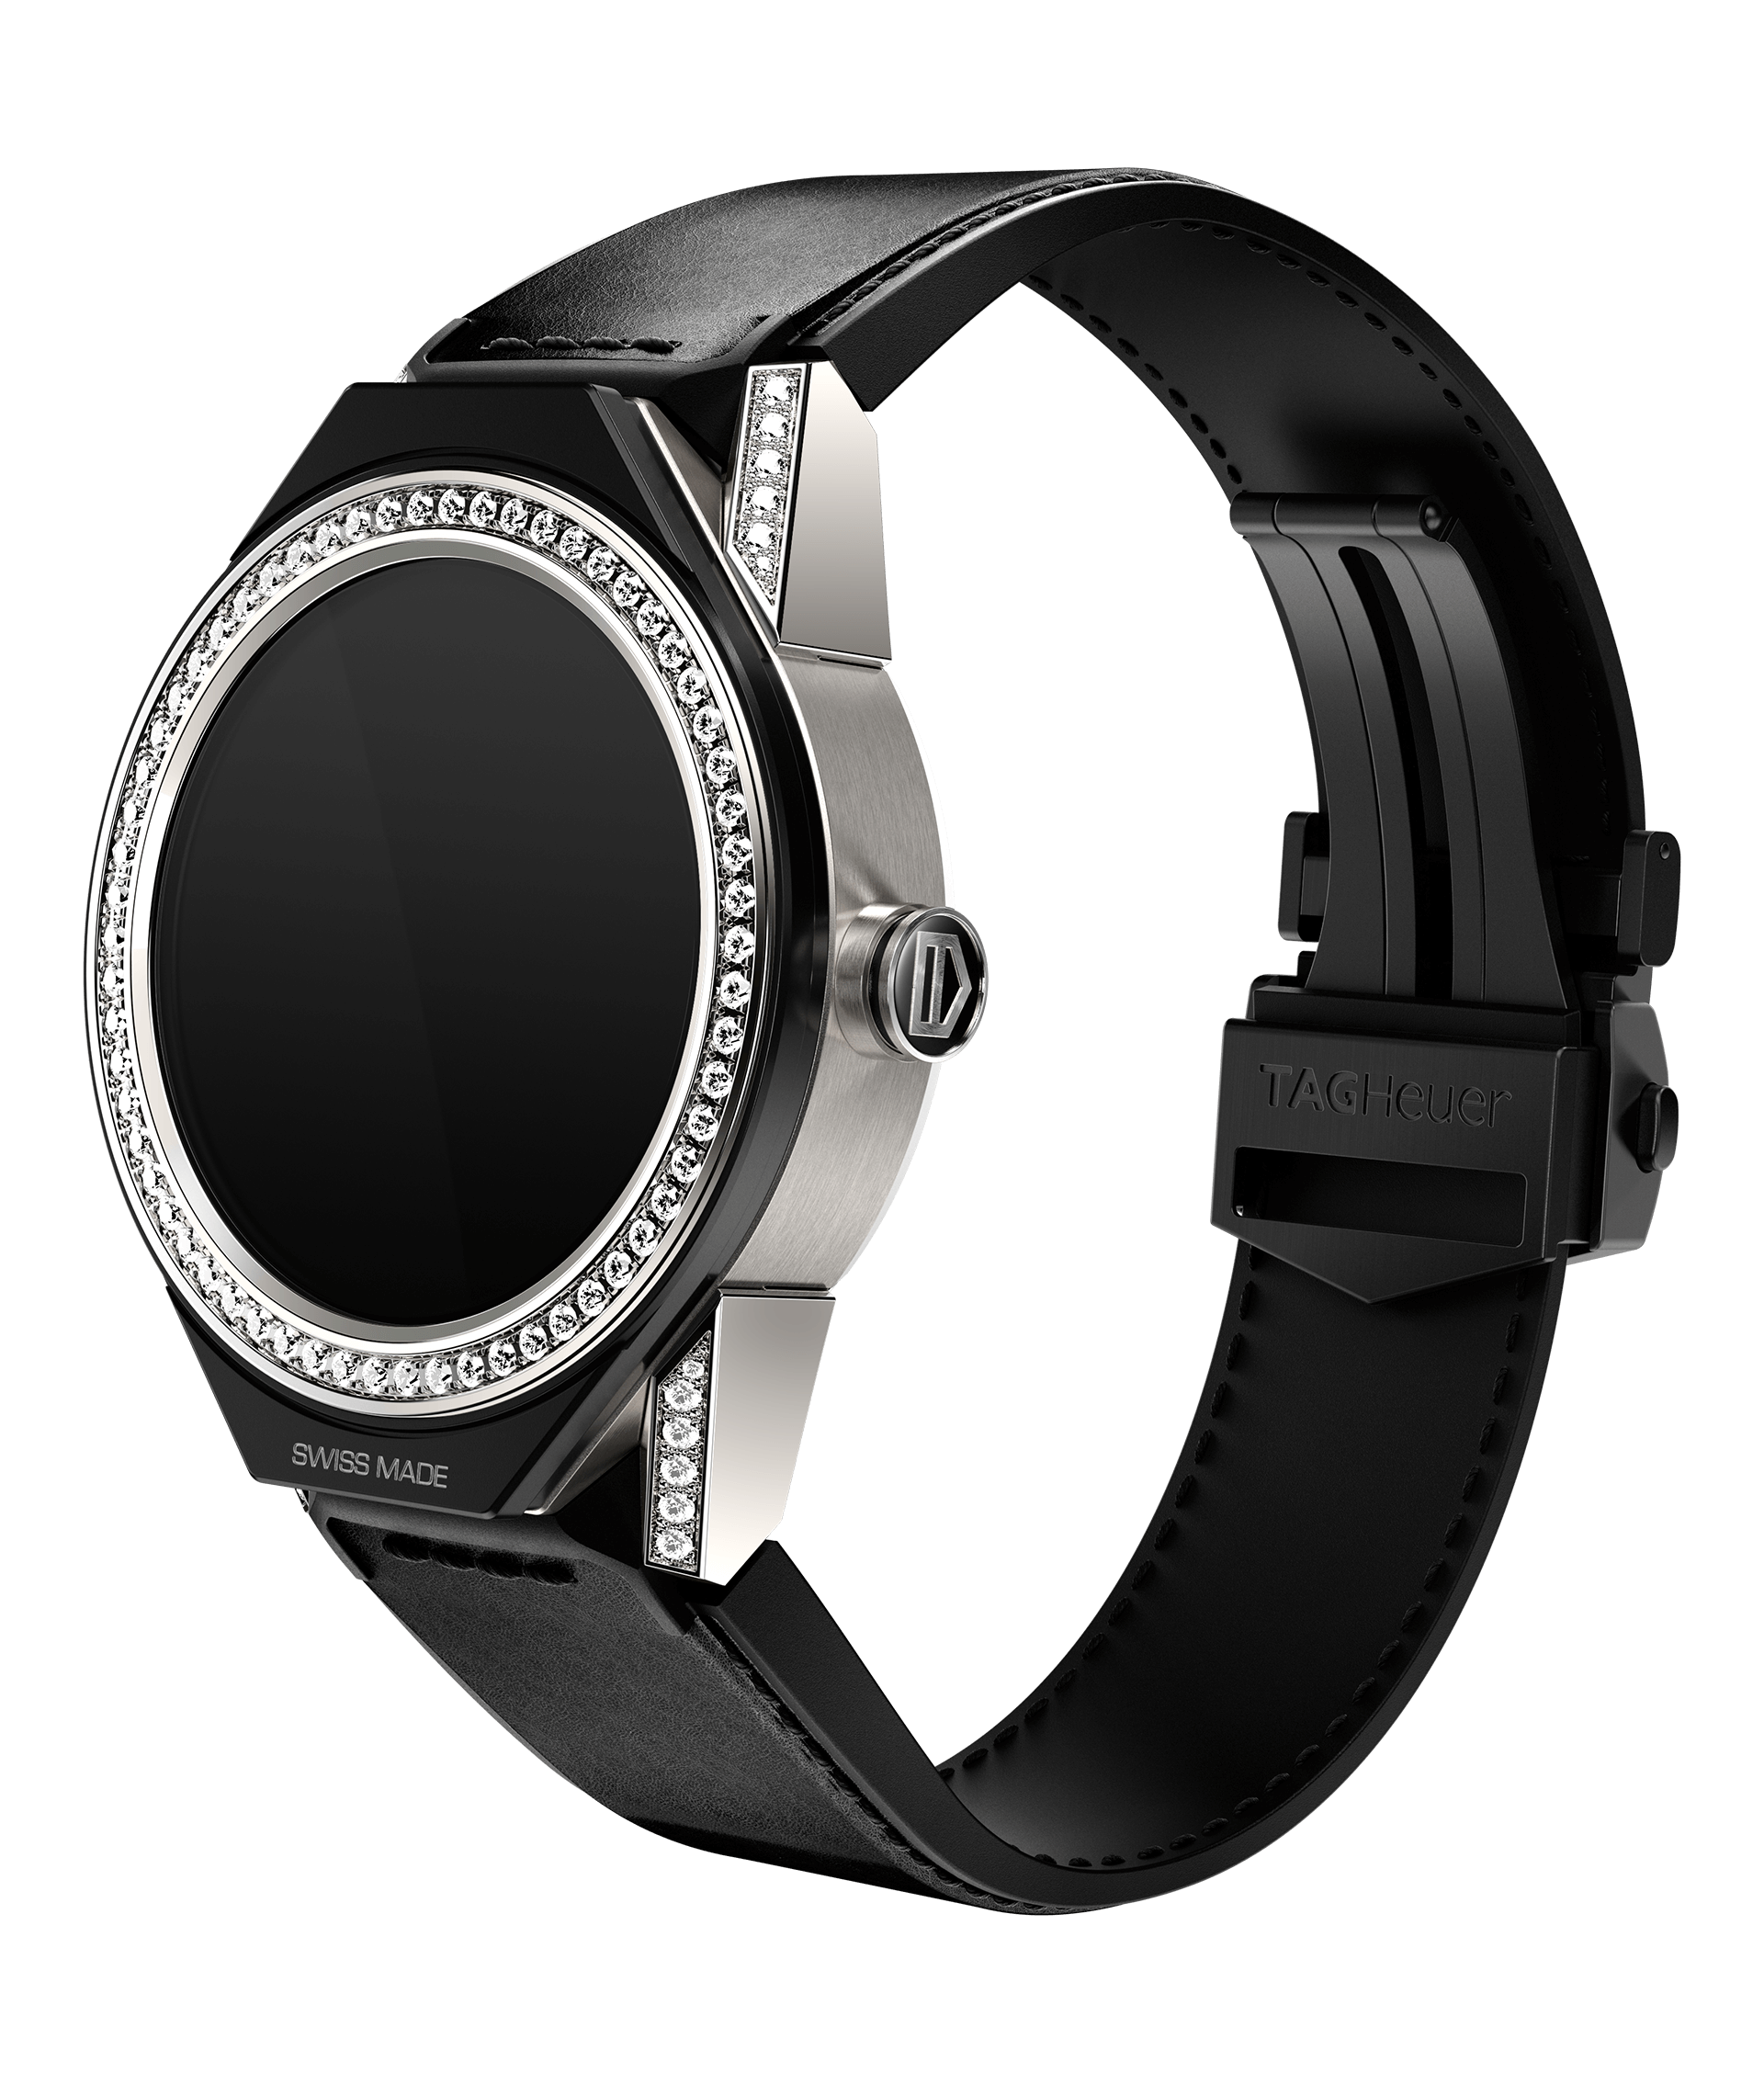 can hybrid typical android introducing design mobile device halo kind the look of an with like great geeks a watches sports that thing seconds much analog smartwatch watch about plus course styled more is this classic